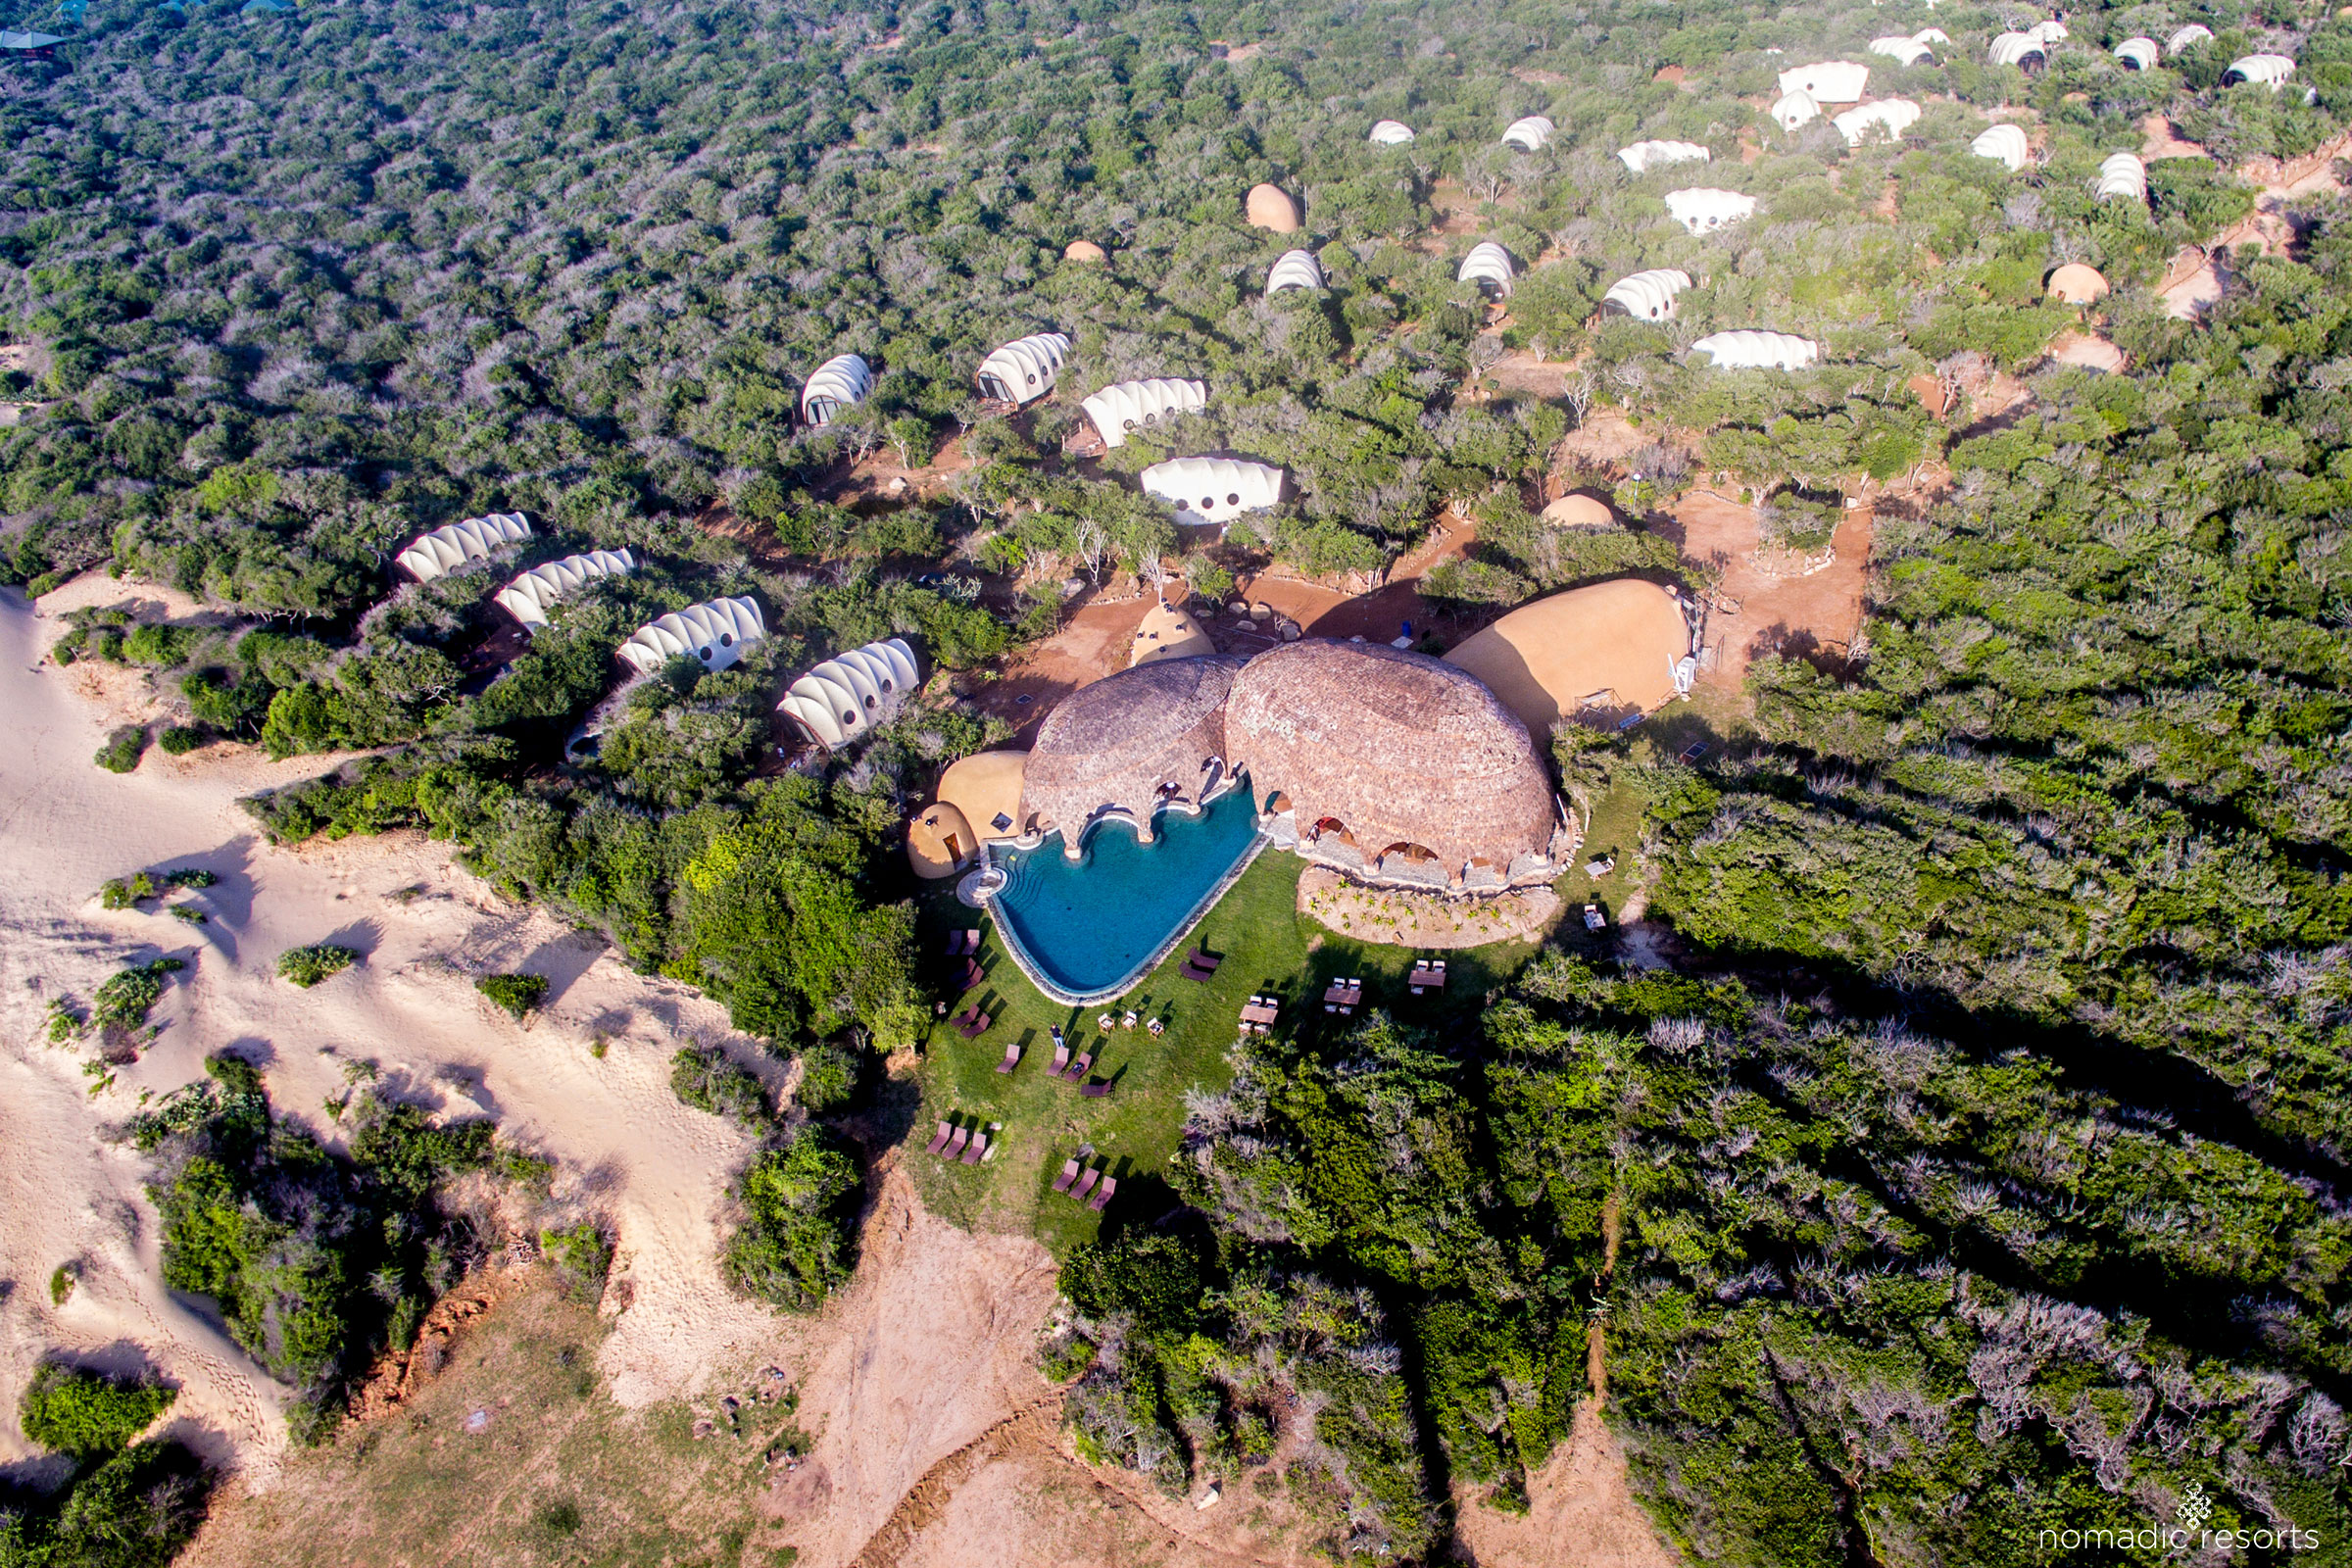 aerial image of wild coast tented lodge, yala national park, sri lanka